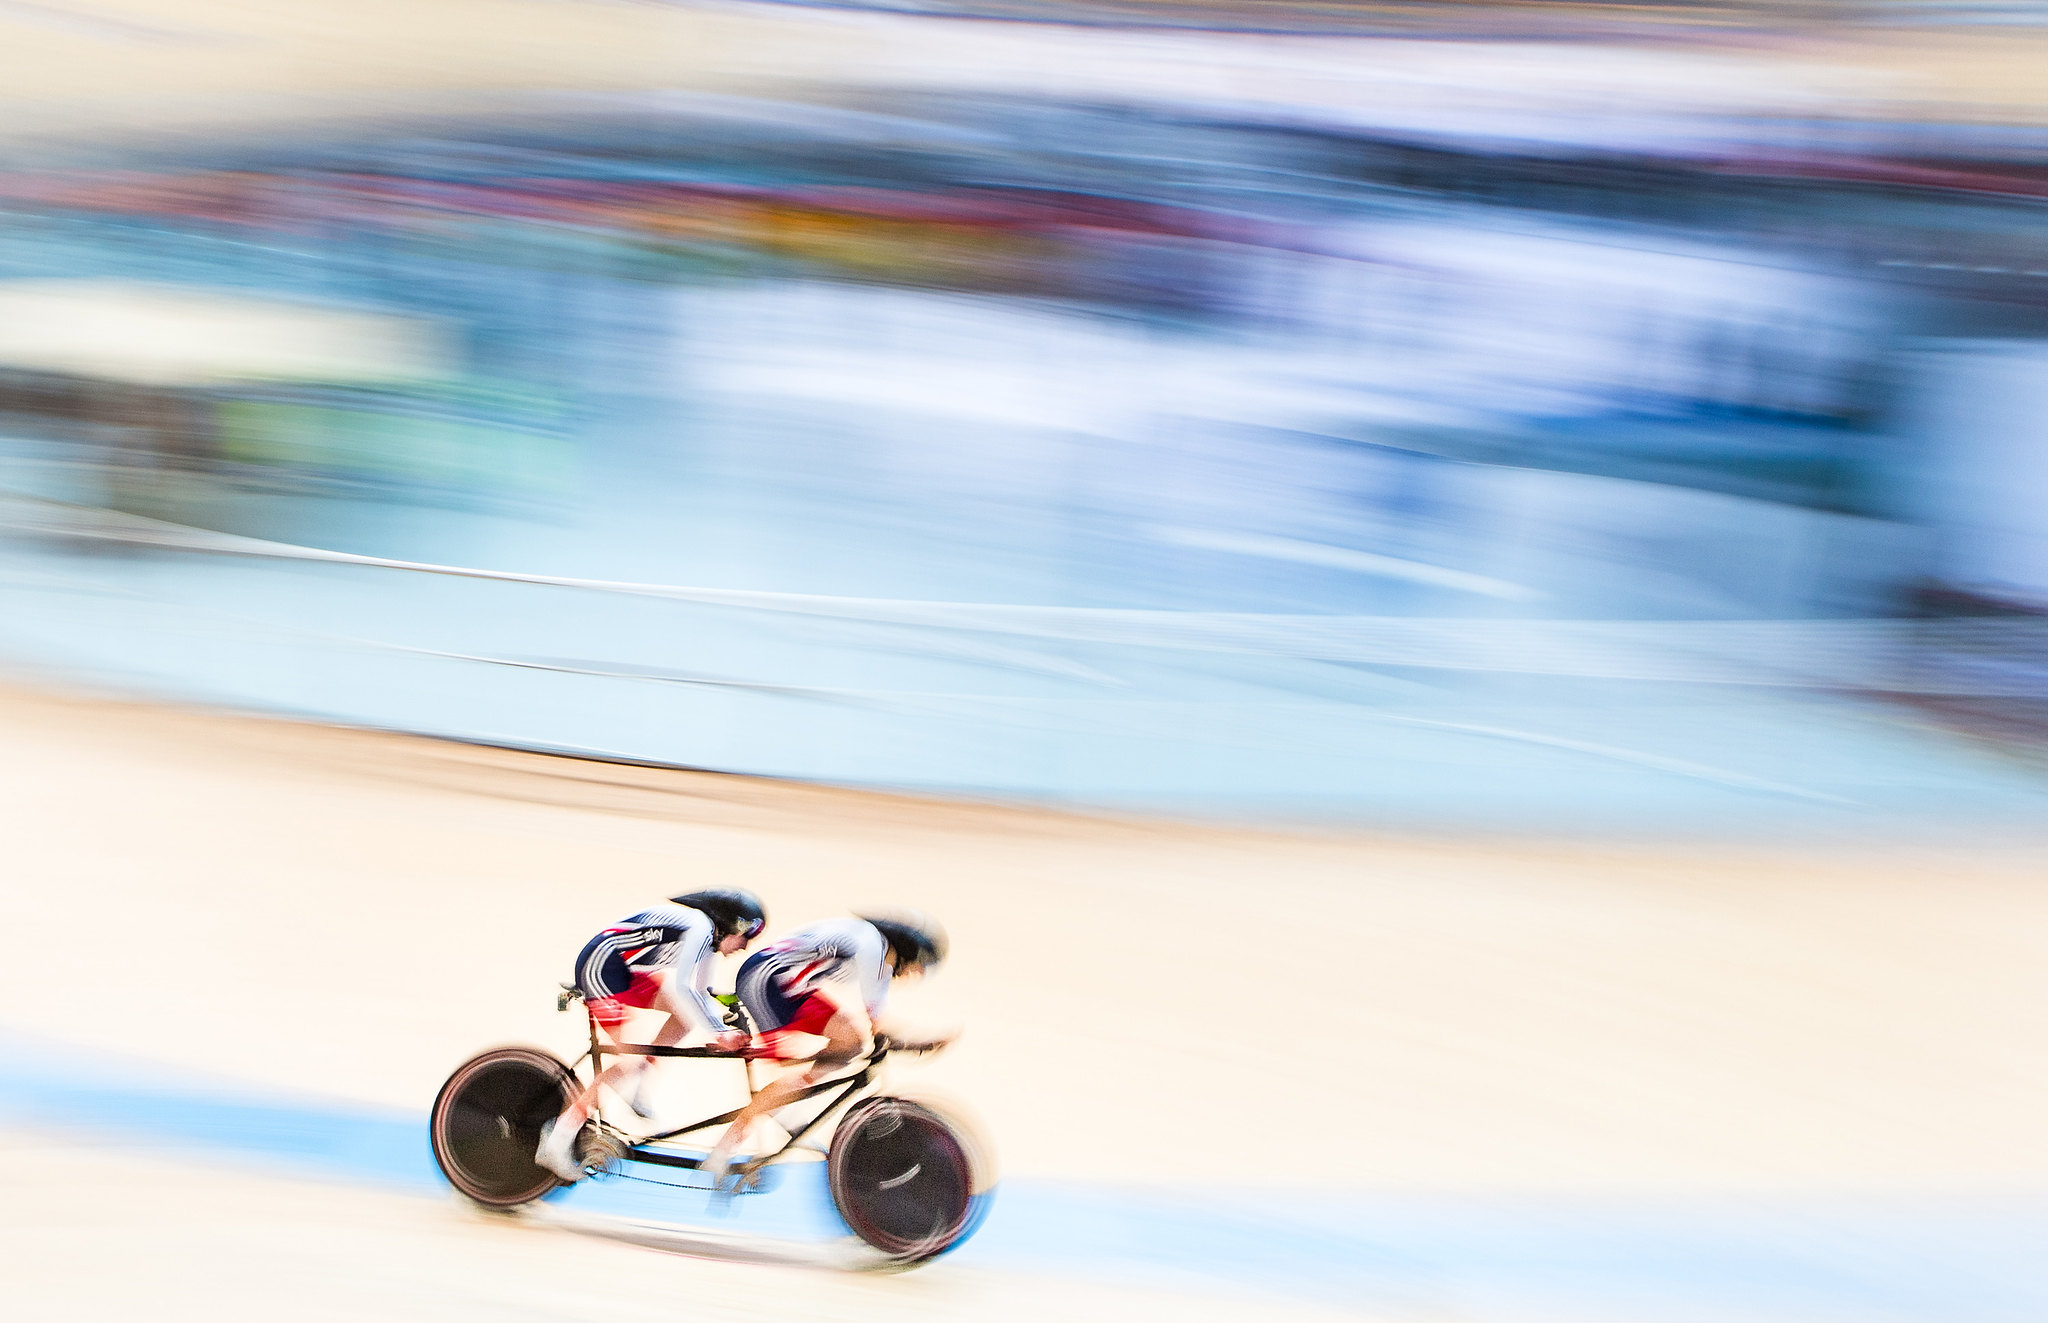 2016 UCI Para-cycling Track World Championships - Day Two